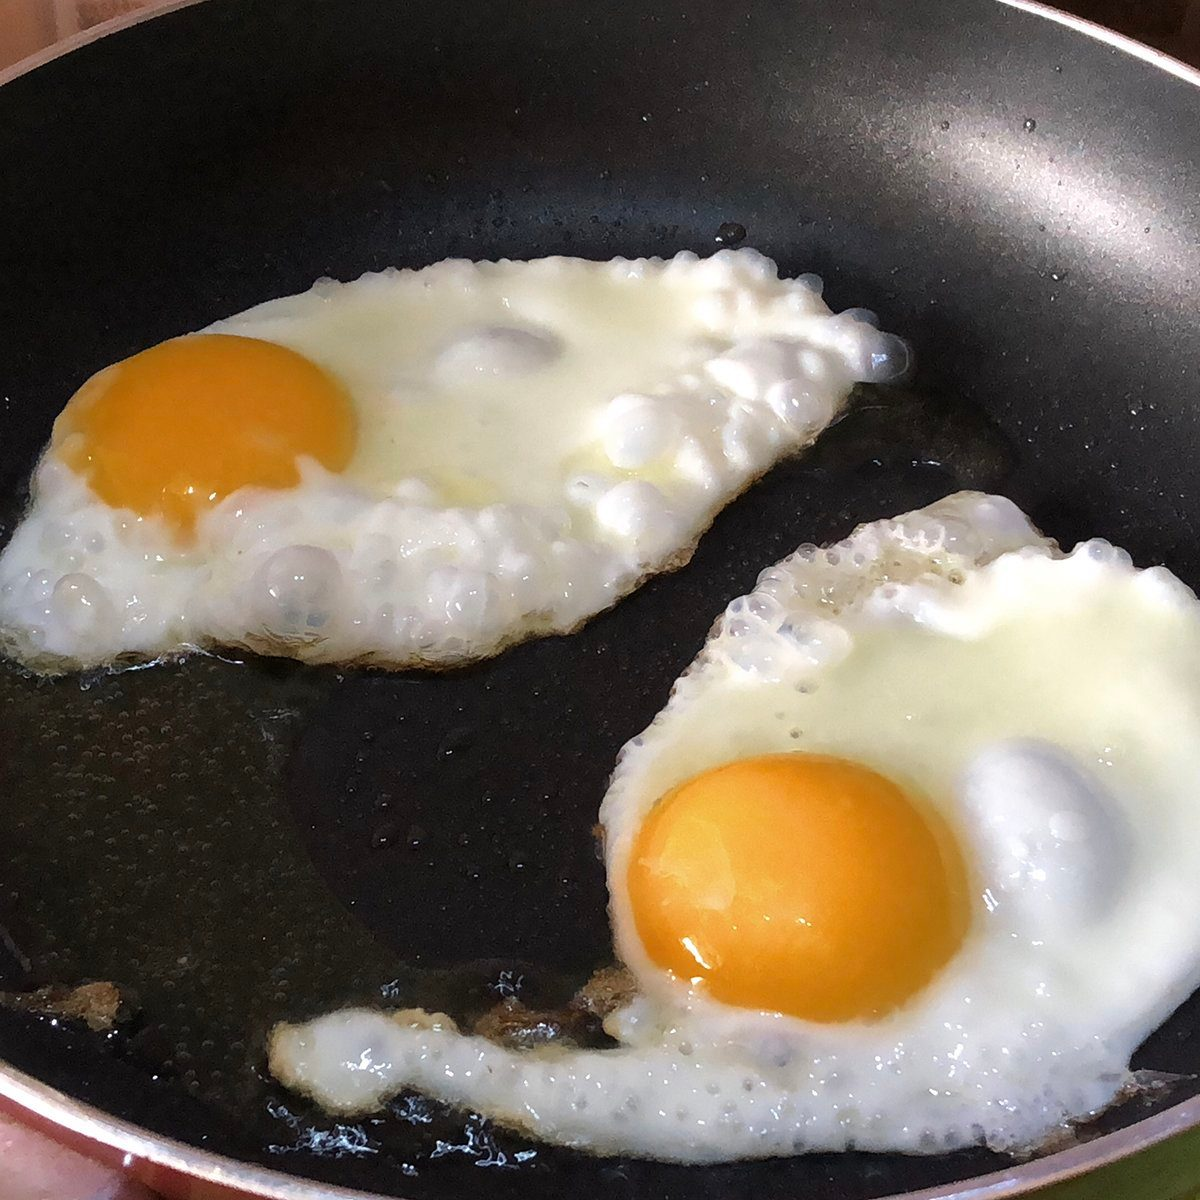 Photo showing two fried eggs that are being cooked in a greasy frying pan, as part of a full-English fried breakfast fry-up.